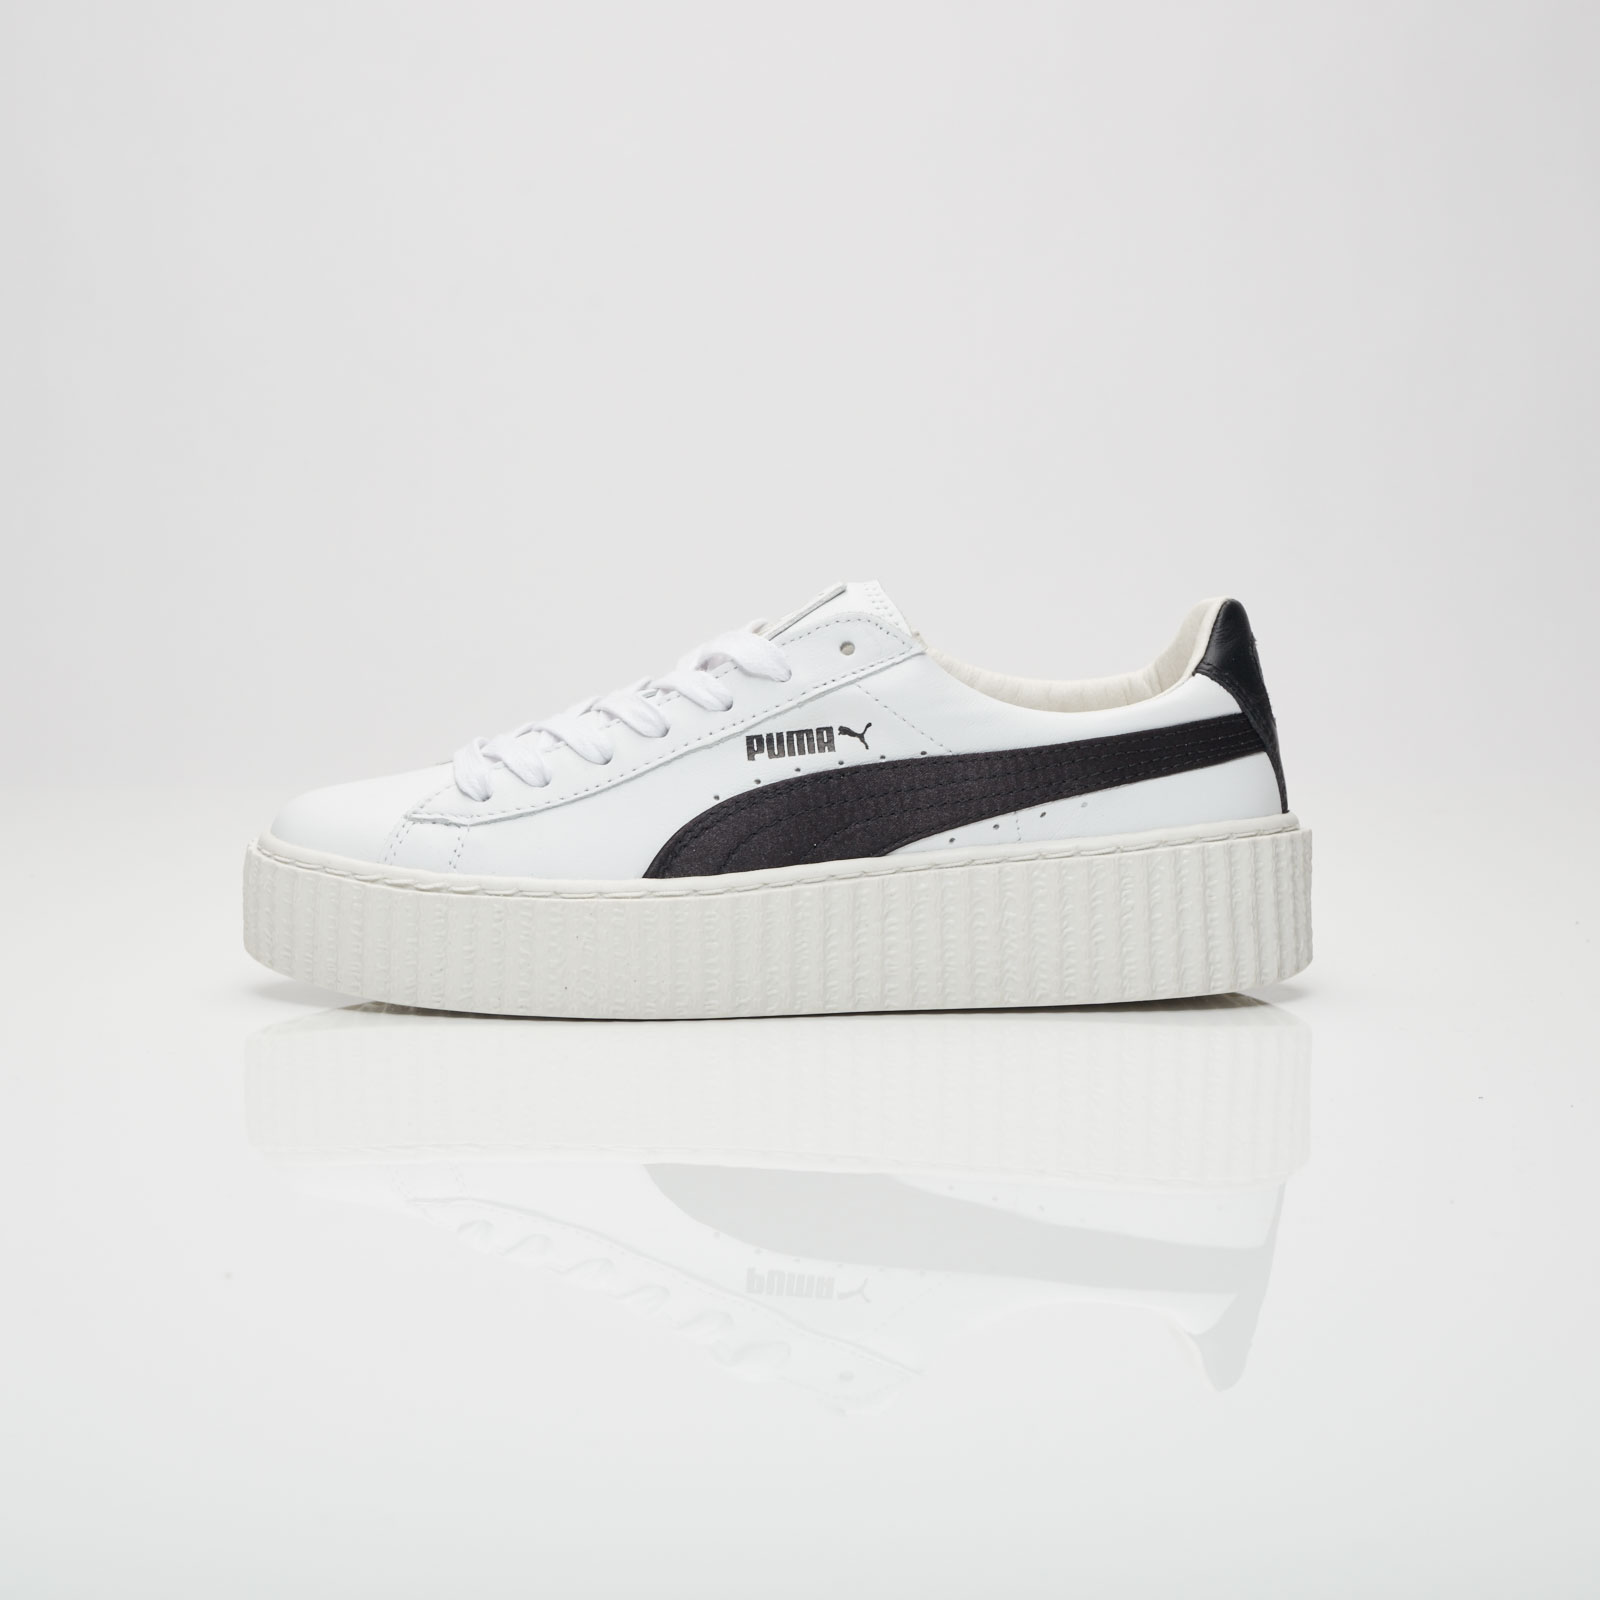 low priced 4112a ea563 Puma Creeper Cracked Leather - 364462-01 - Sneakersnstuff ...